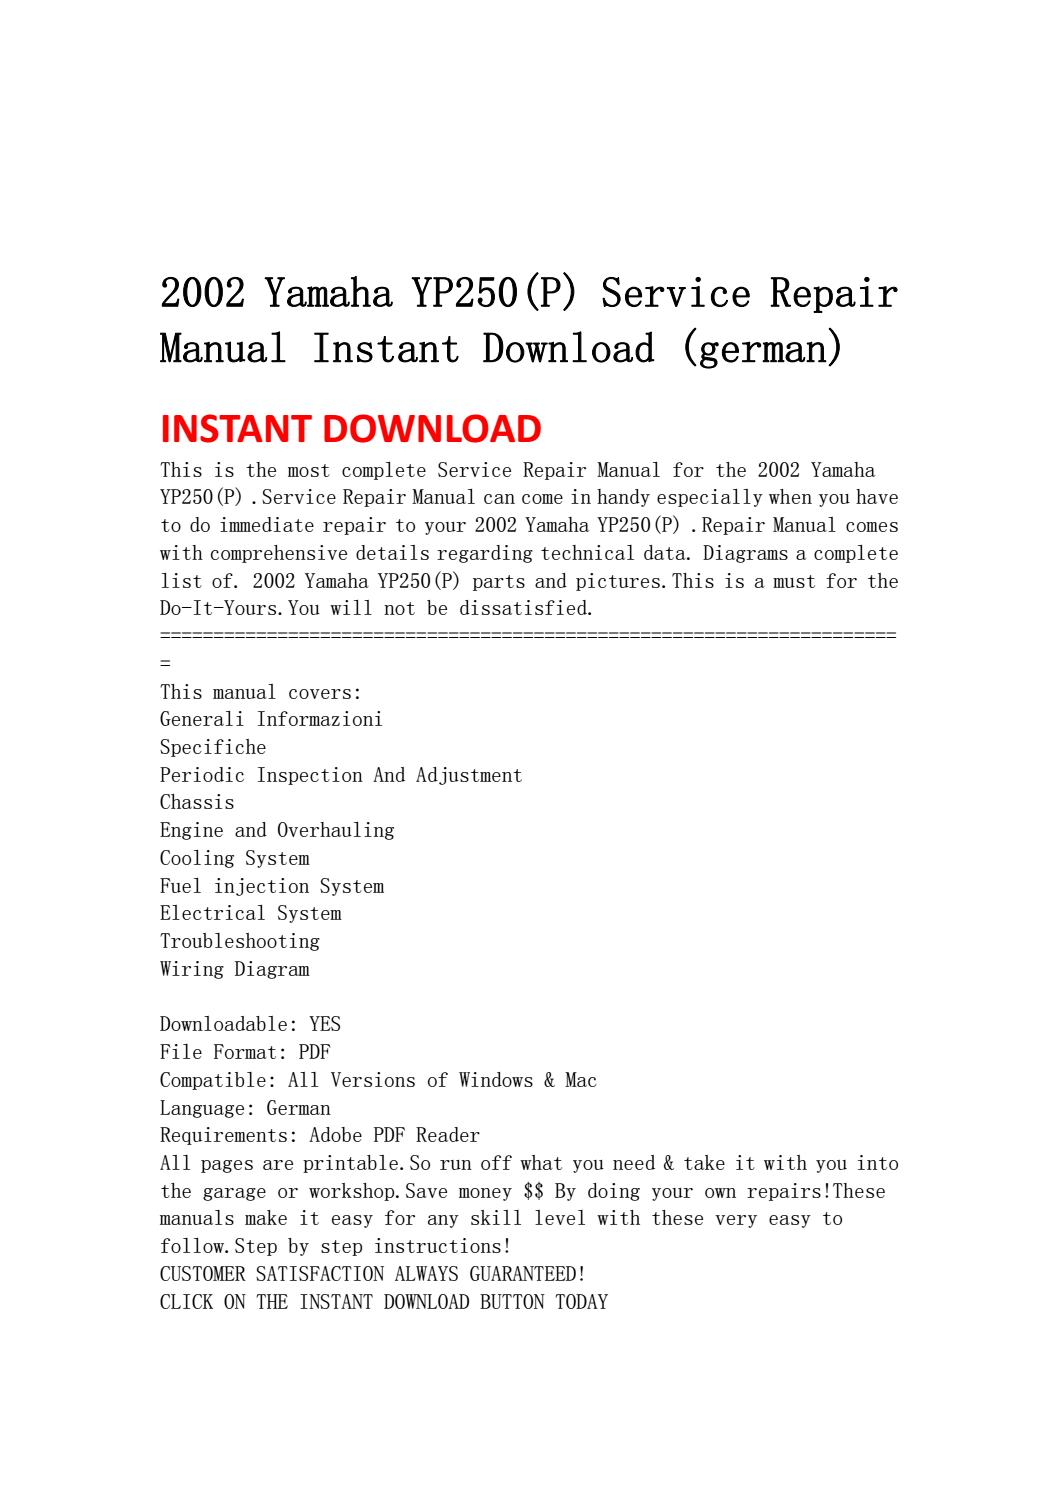 2002 yamaha yp250(p) service repair manual instant download ... on